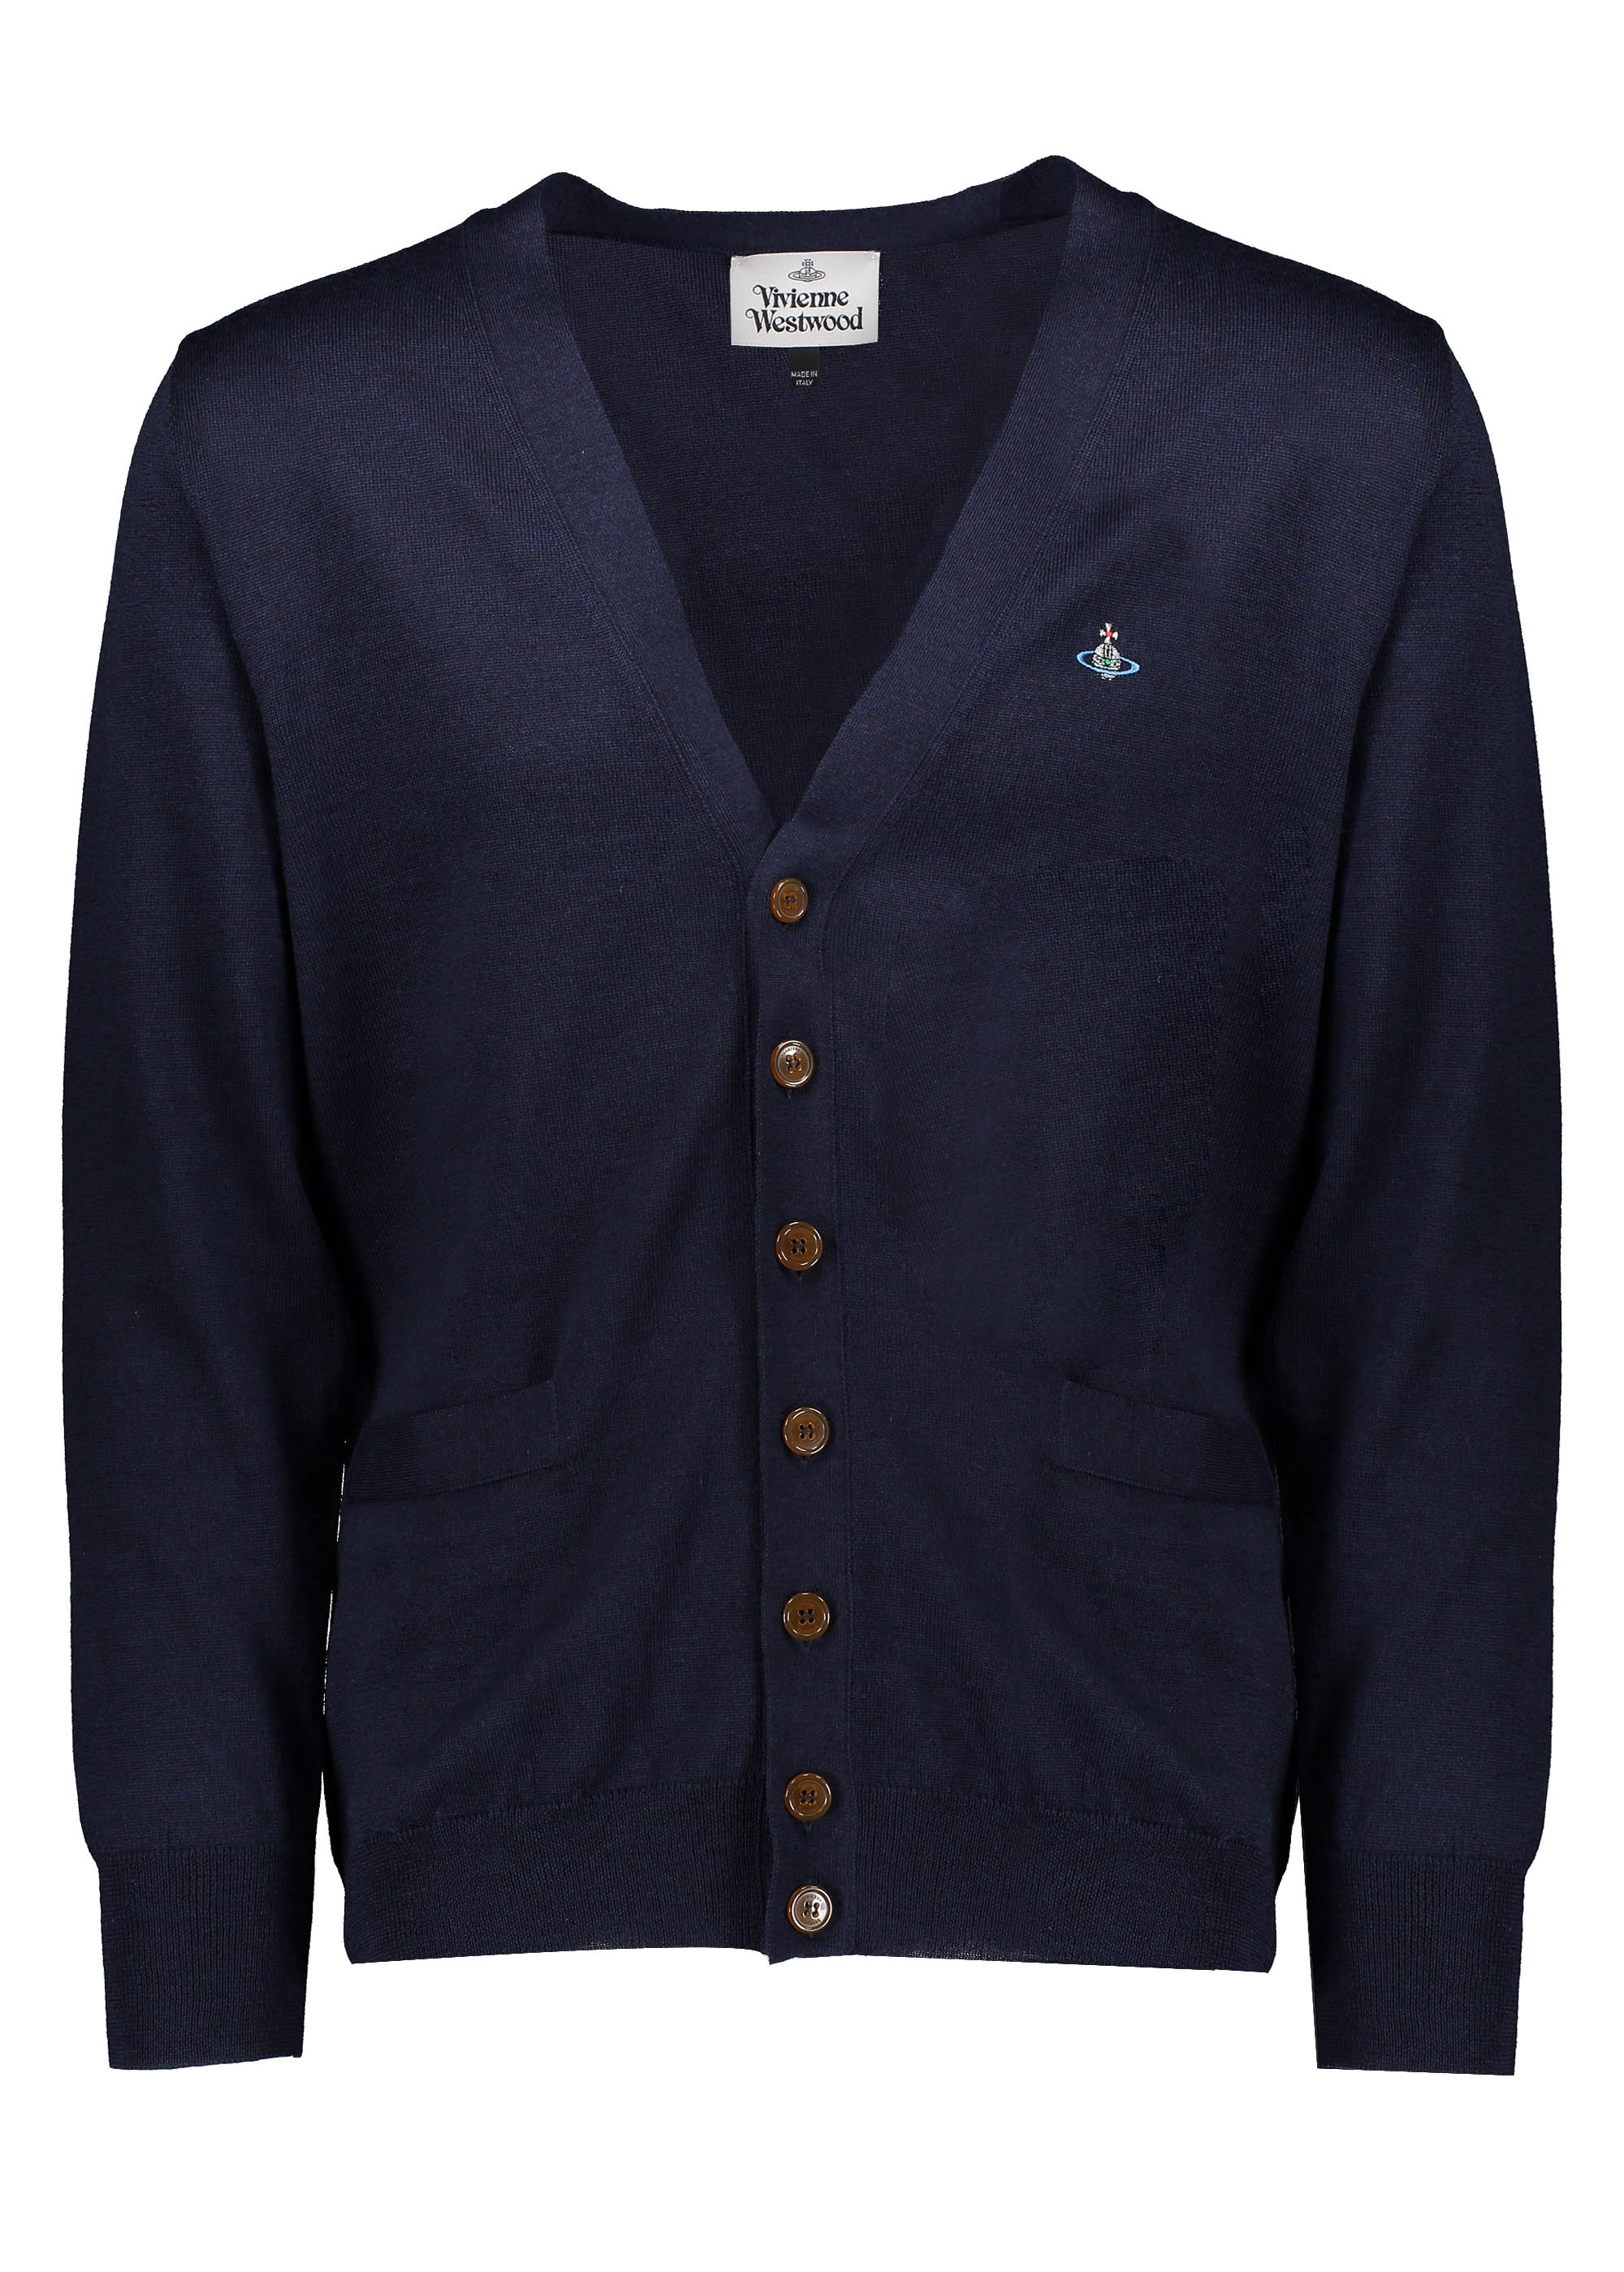 Vivienne Westwood Mens Cardigan - Navy - Cardigans from Triads UK